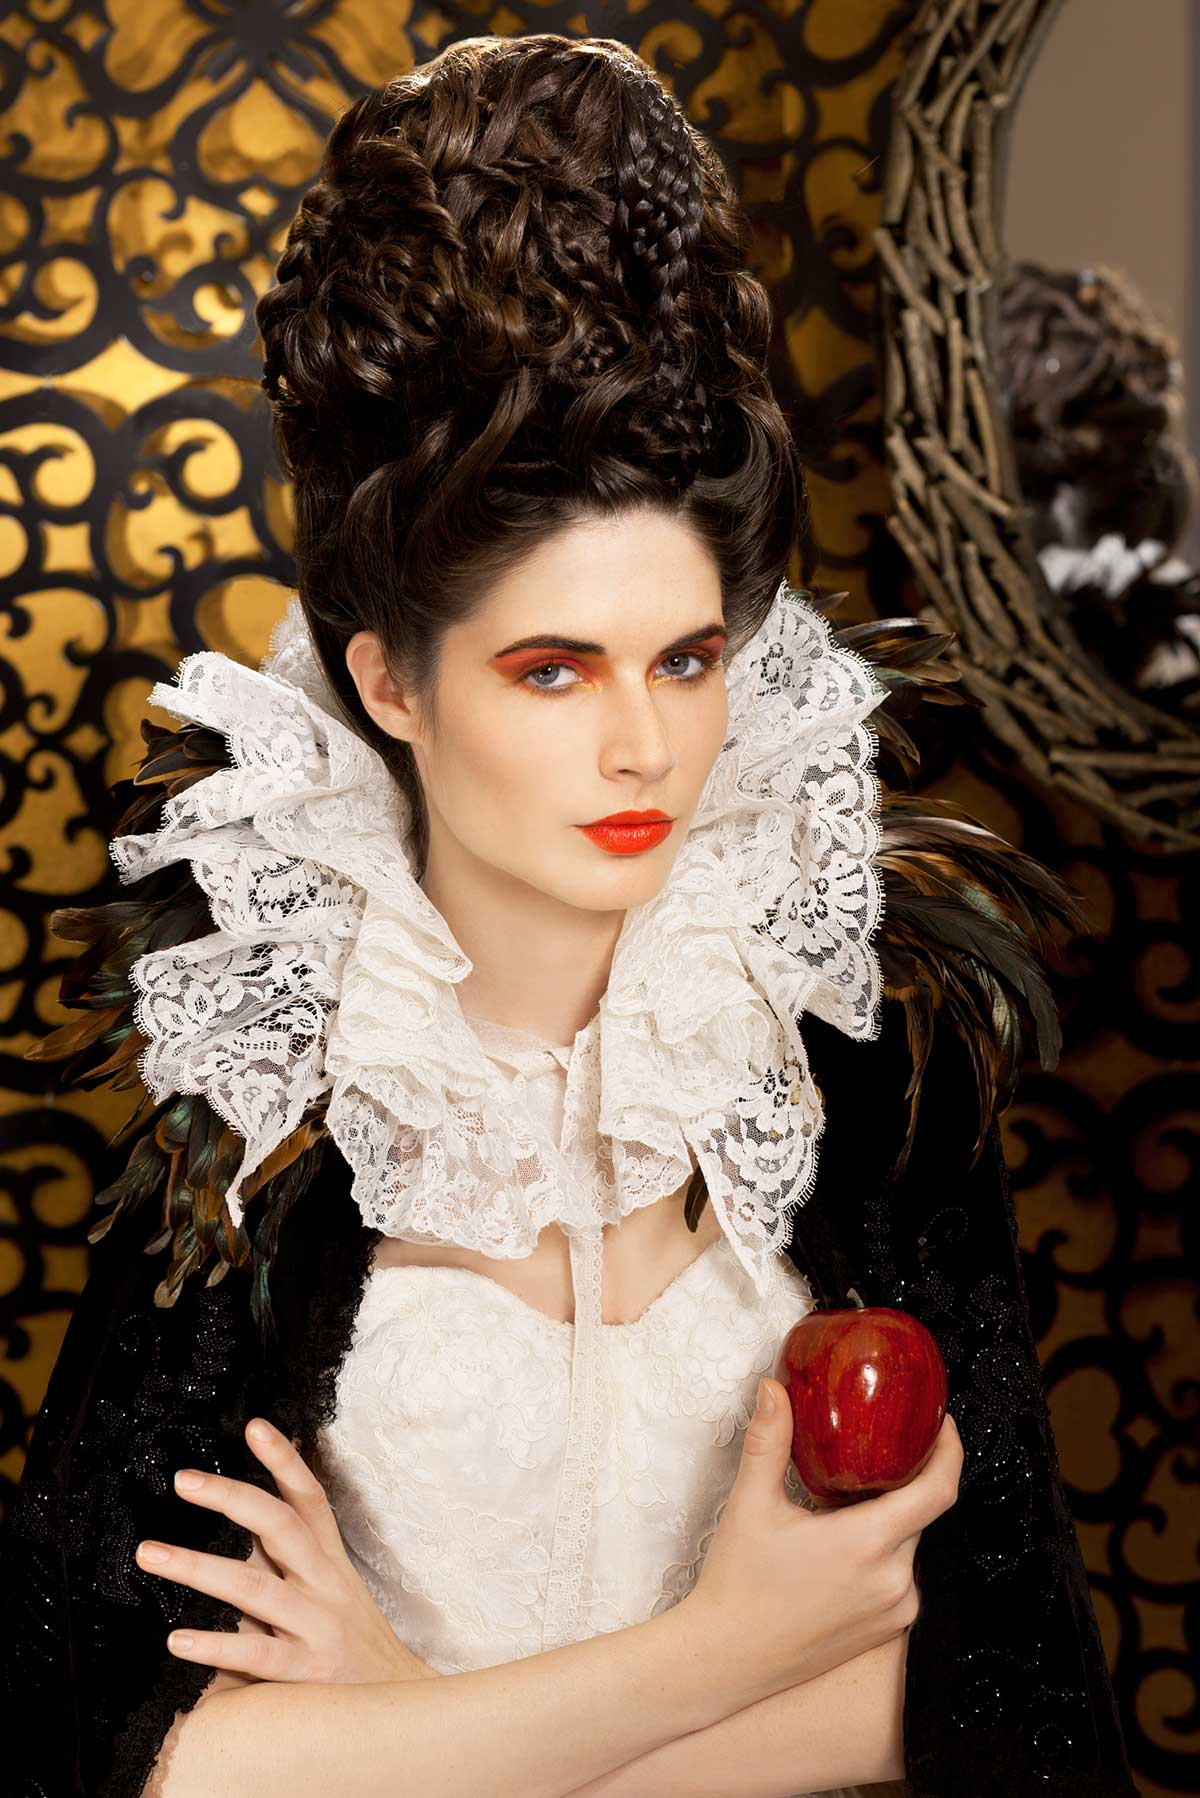 EVIL QUEEN | Constance McCardle Fashion Design | Photography: Jean Sweet